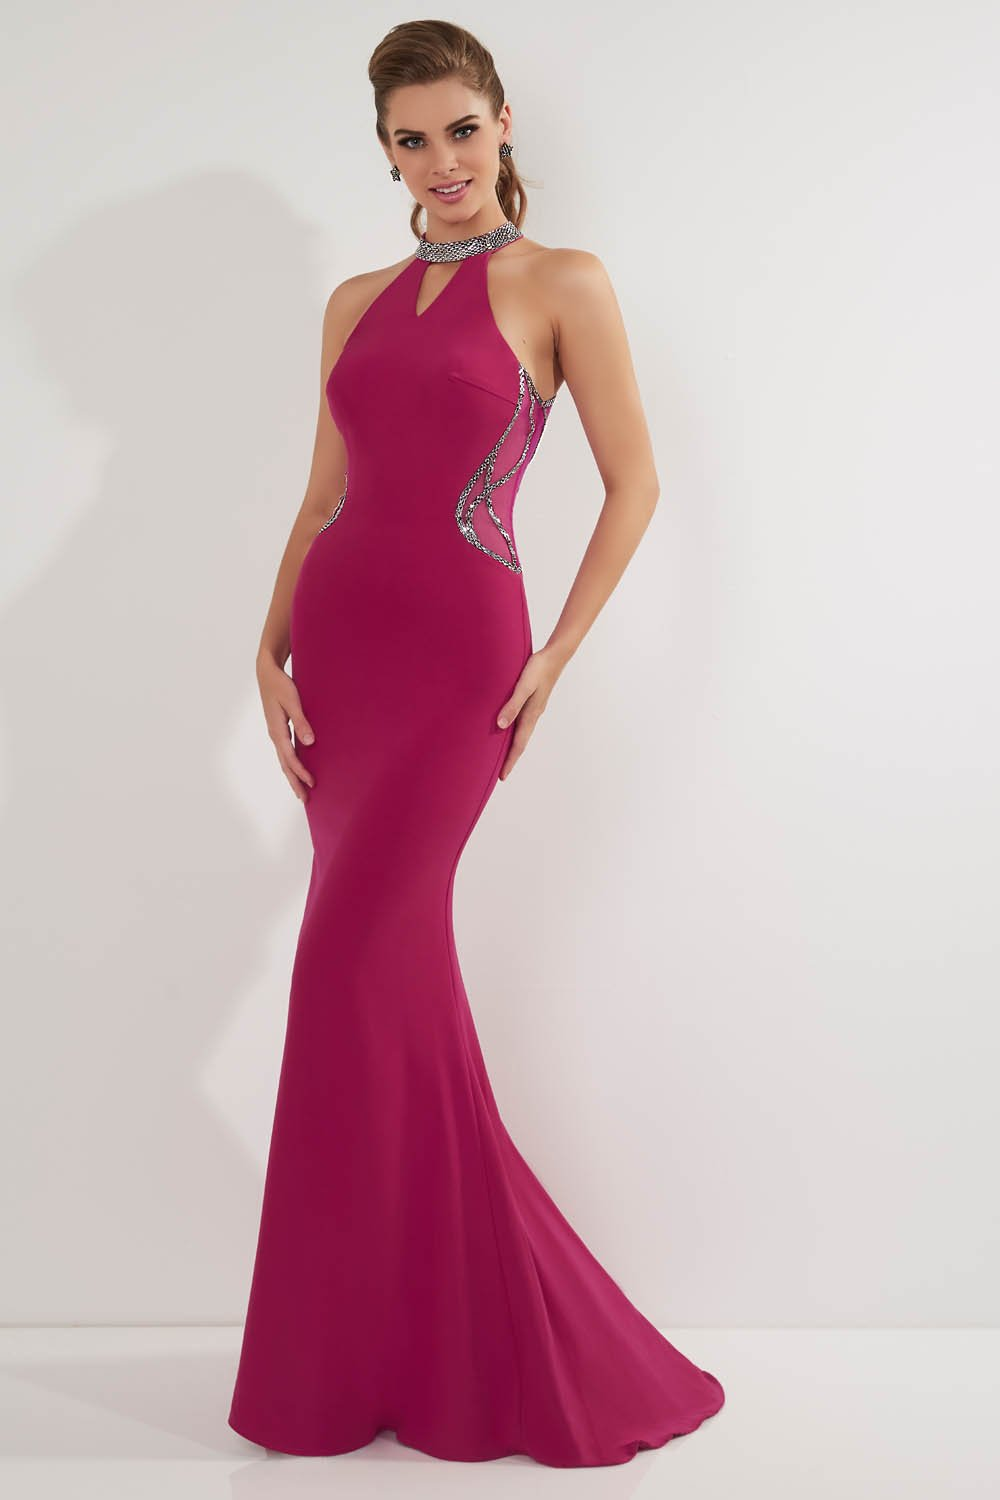 Studio 17 12711 prom dress images.  Studio 17 12711 is available in these colors: Rosewood, Royal.